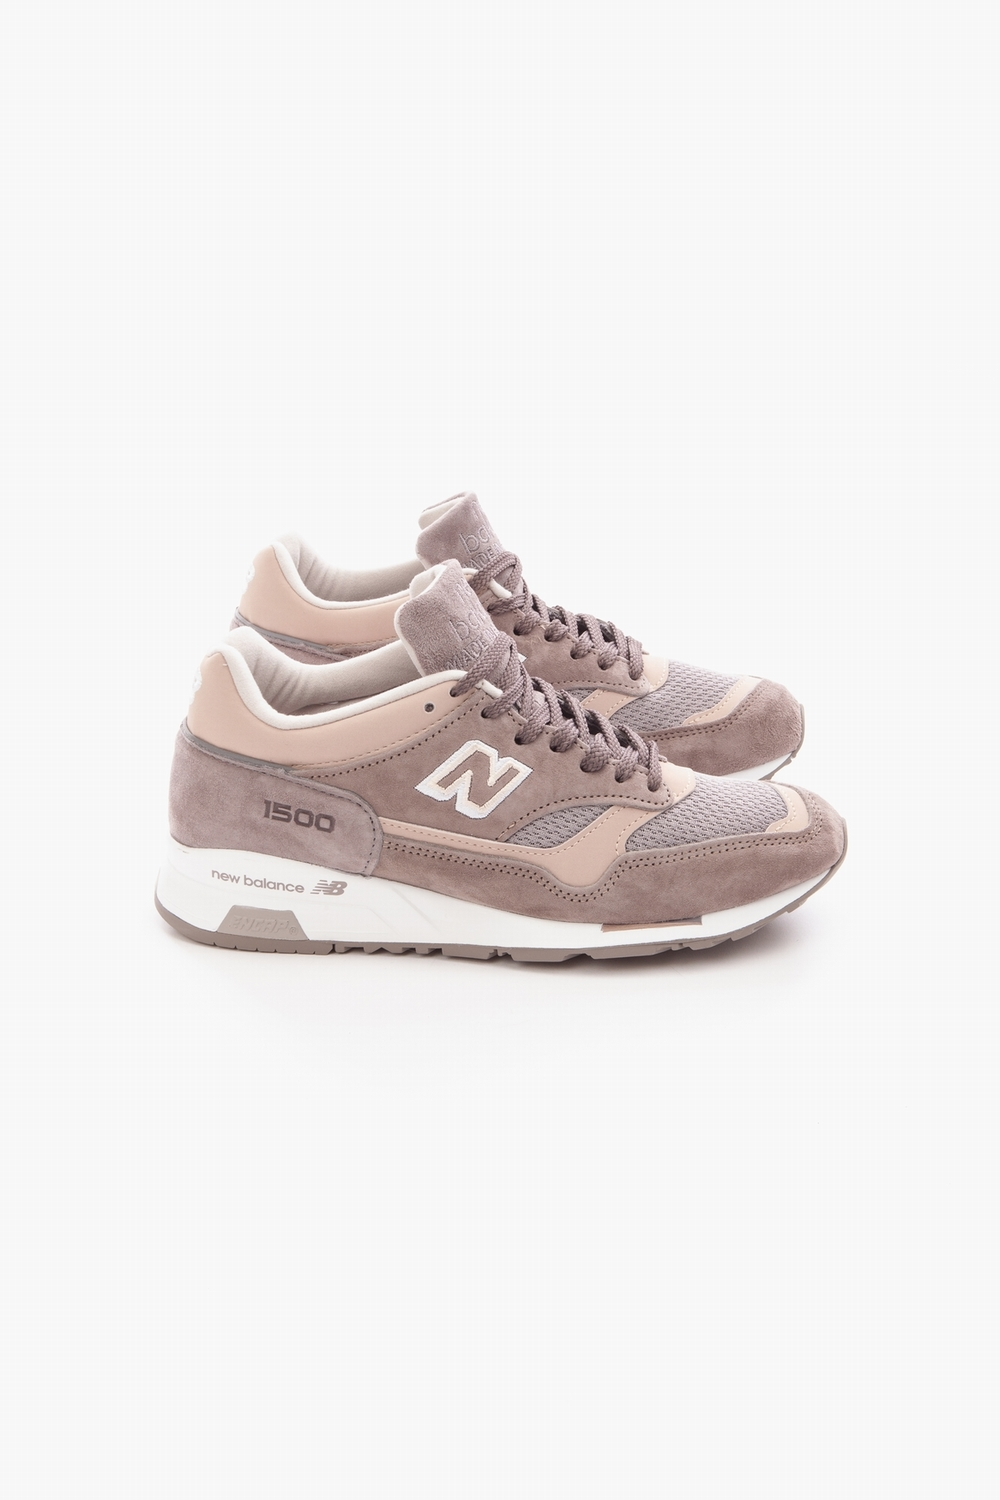 timeless design 69ea1 b17f2 NEW BALANCE 1500 LGS